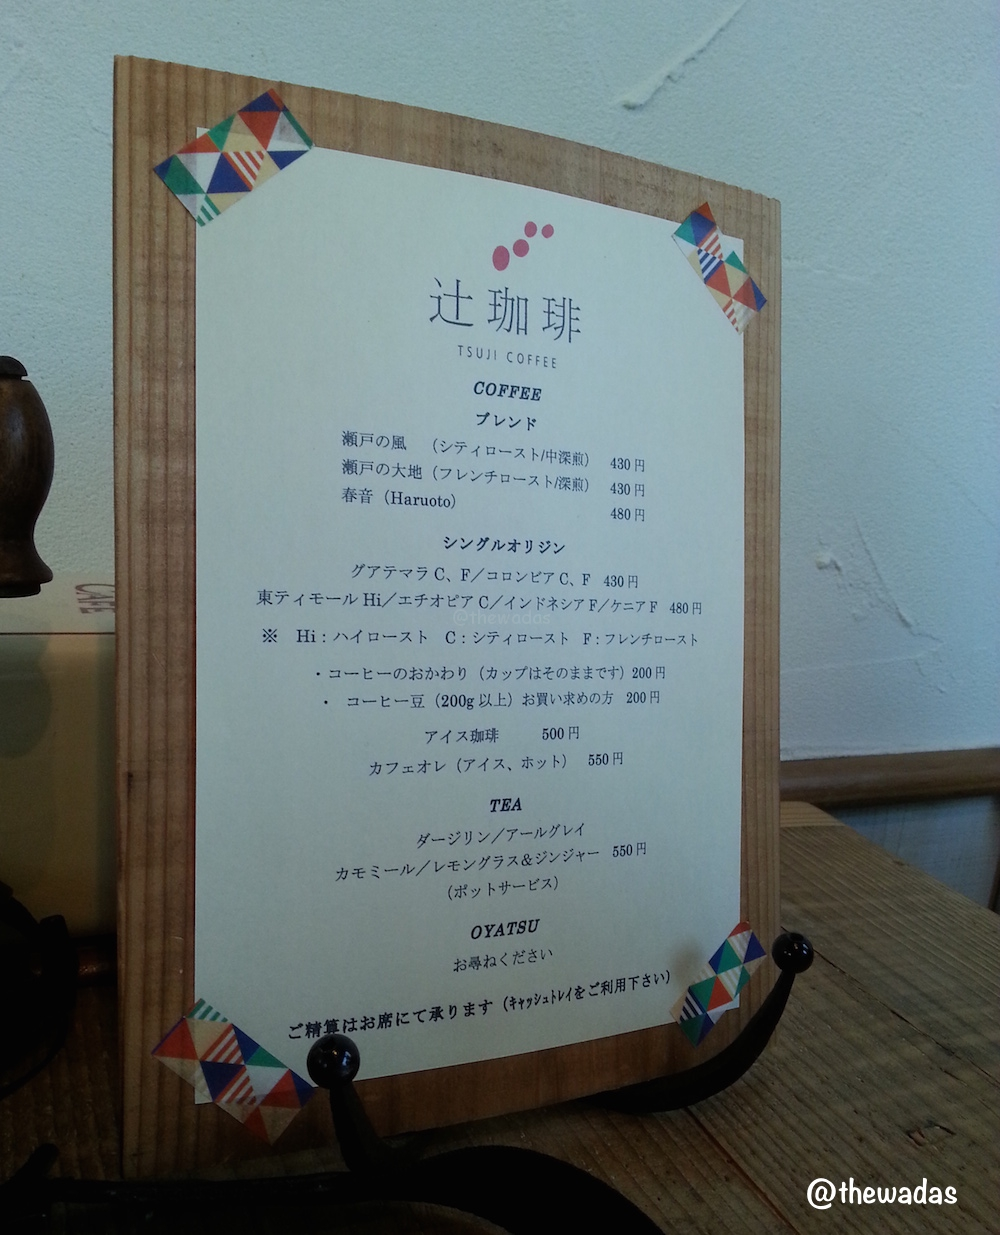 Tsuji Coffee: Cafe in Kasaoka City, coffee and sweets menu